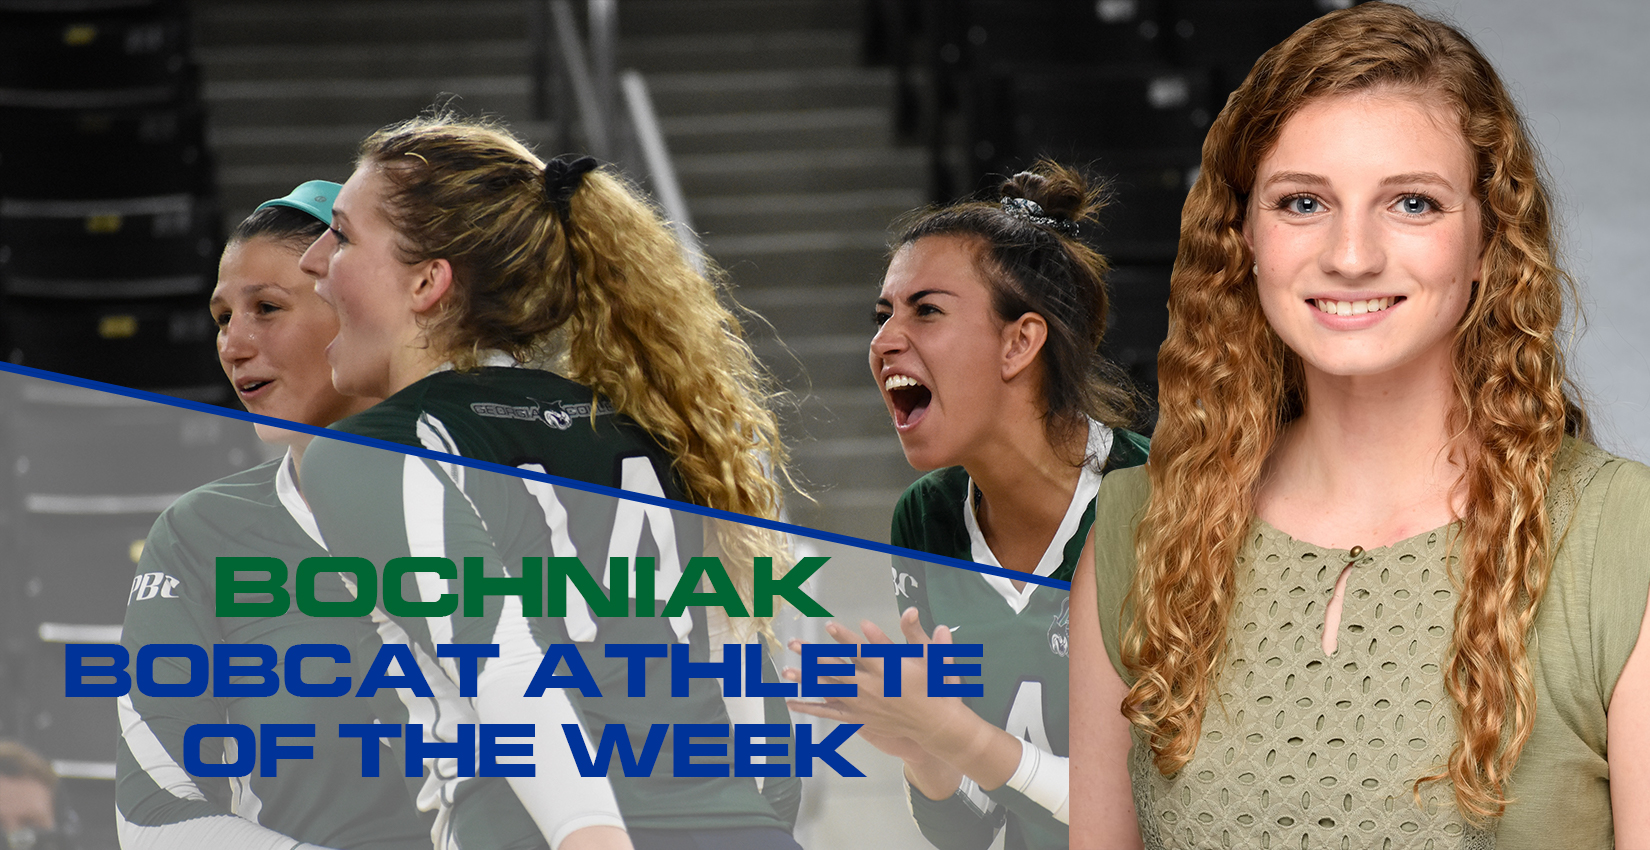 Libby Bochniak Earns Bobcat Athlete of the Week